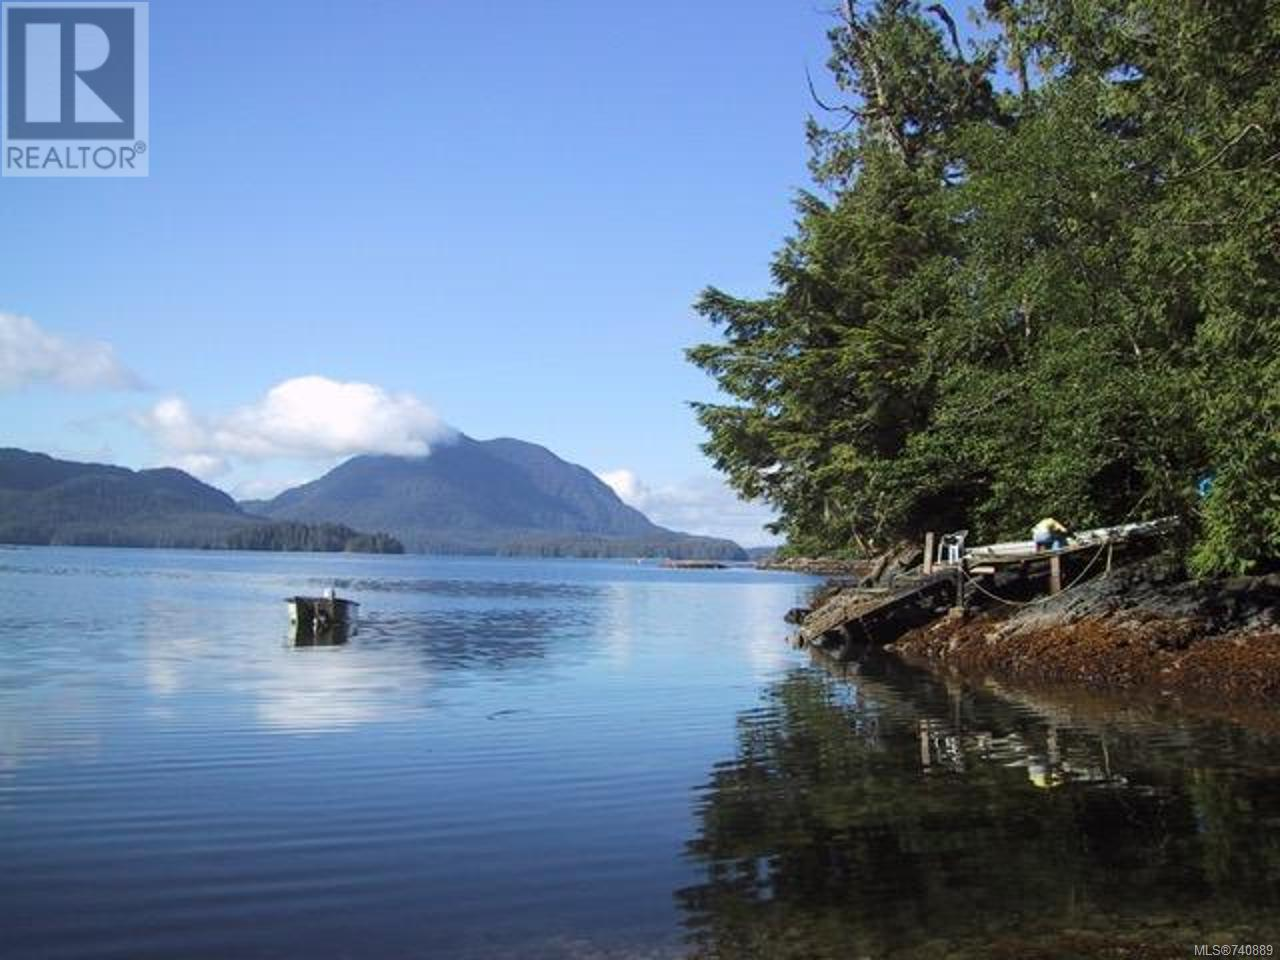 <h3>$499,000</h3><p>Lt 3 Cypress Bay, Tofino, British Columbia</p>